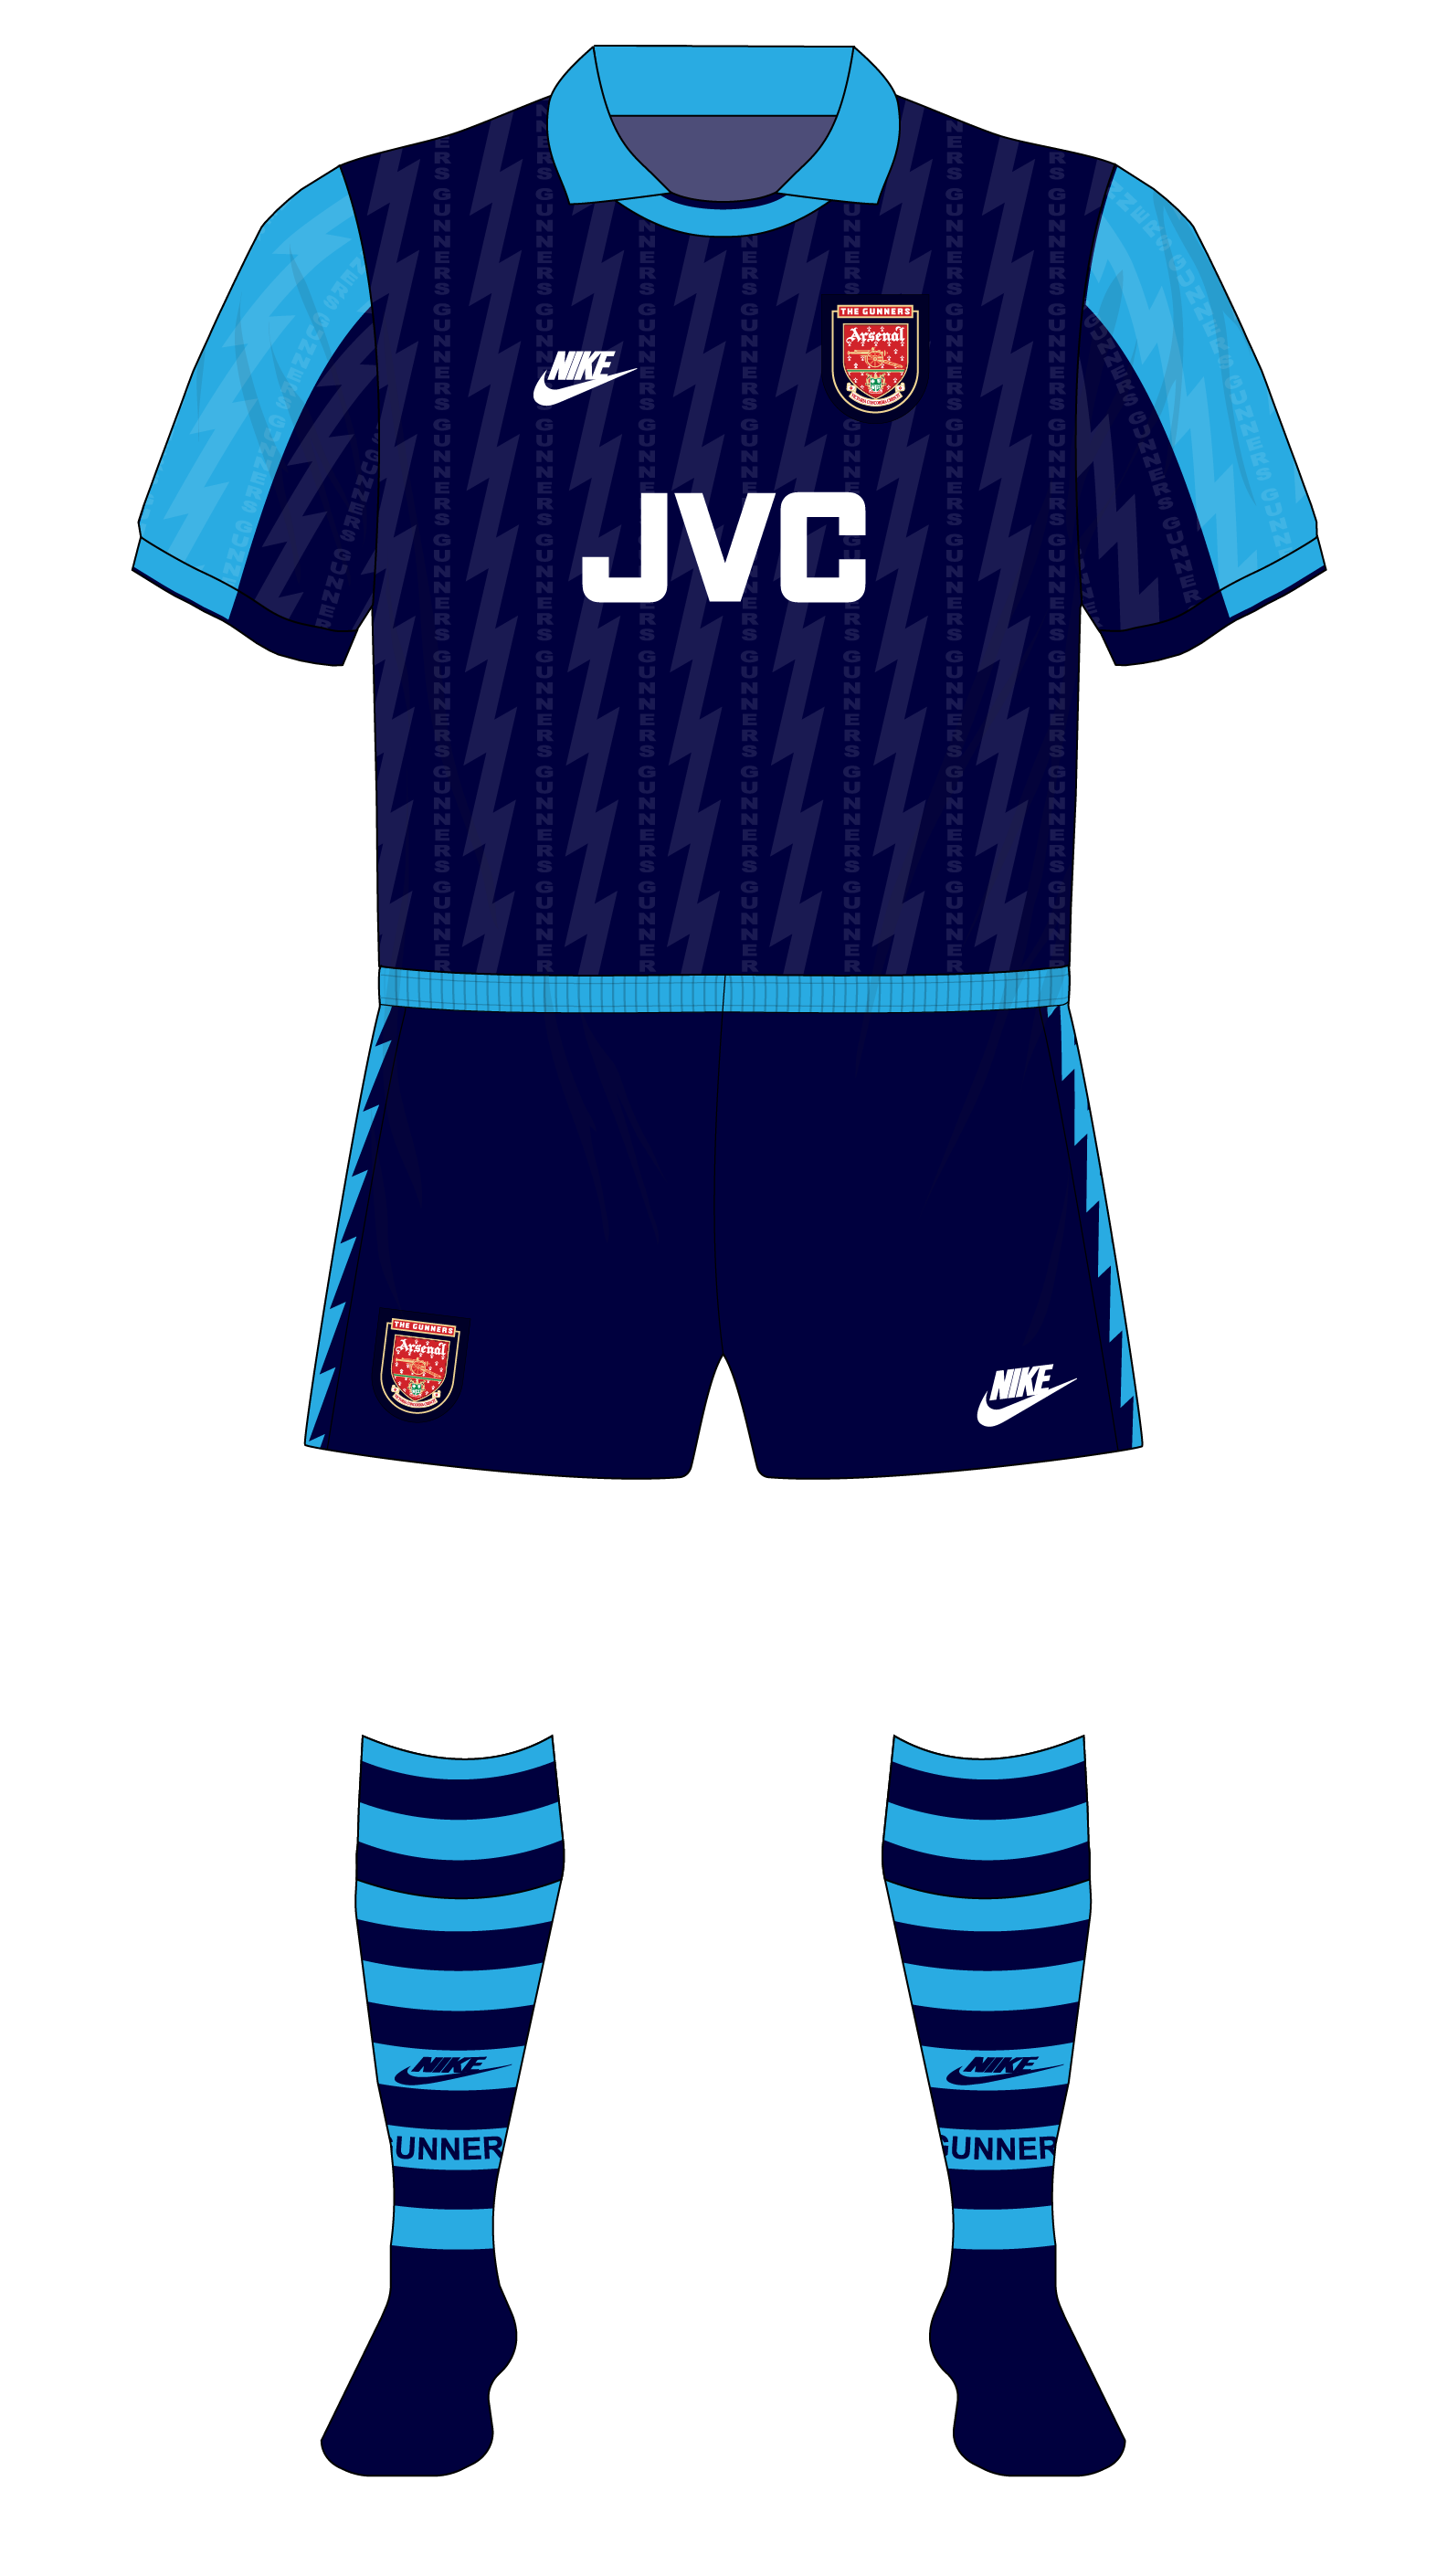 best service cea41 59e11 Arsenal-1994-1995-Nike-away-kit-Milan-Super-Cup-01 – Museum ...